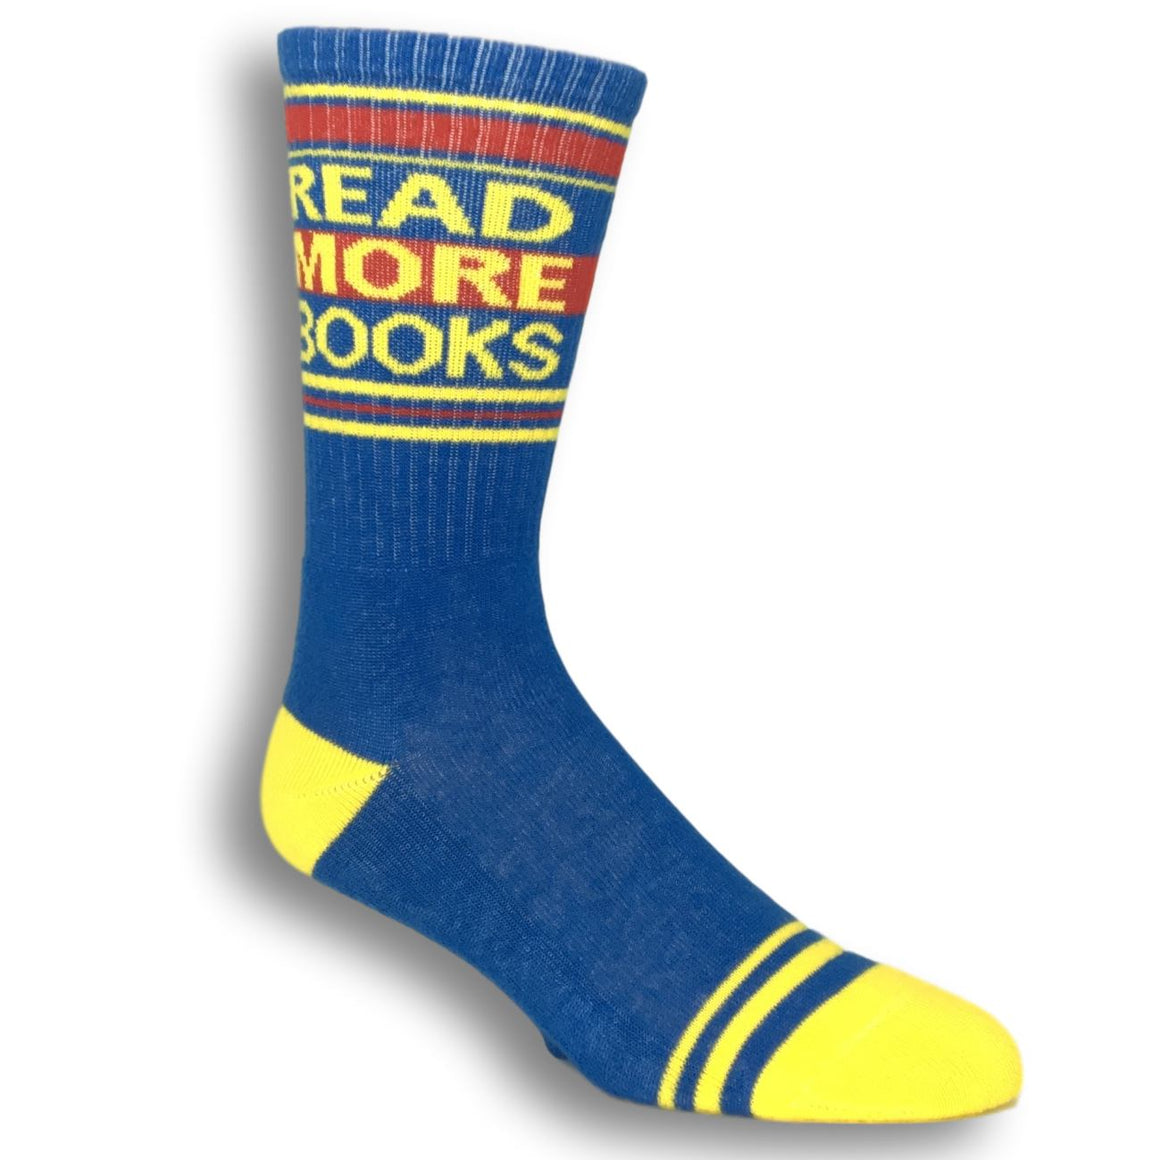 Read More Books Athletic Socks by Gumball Poodle - The Sock Spot